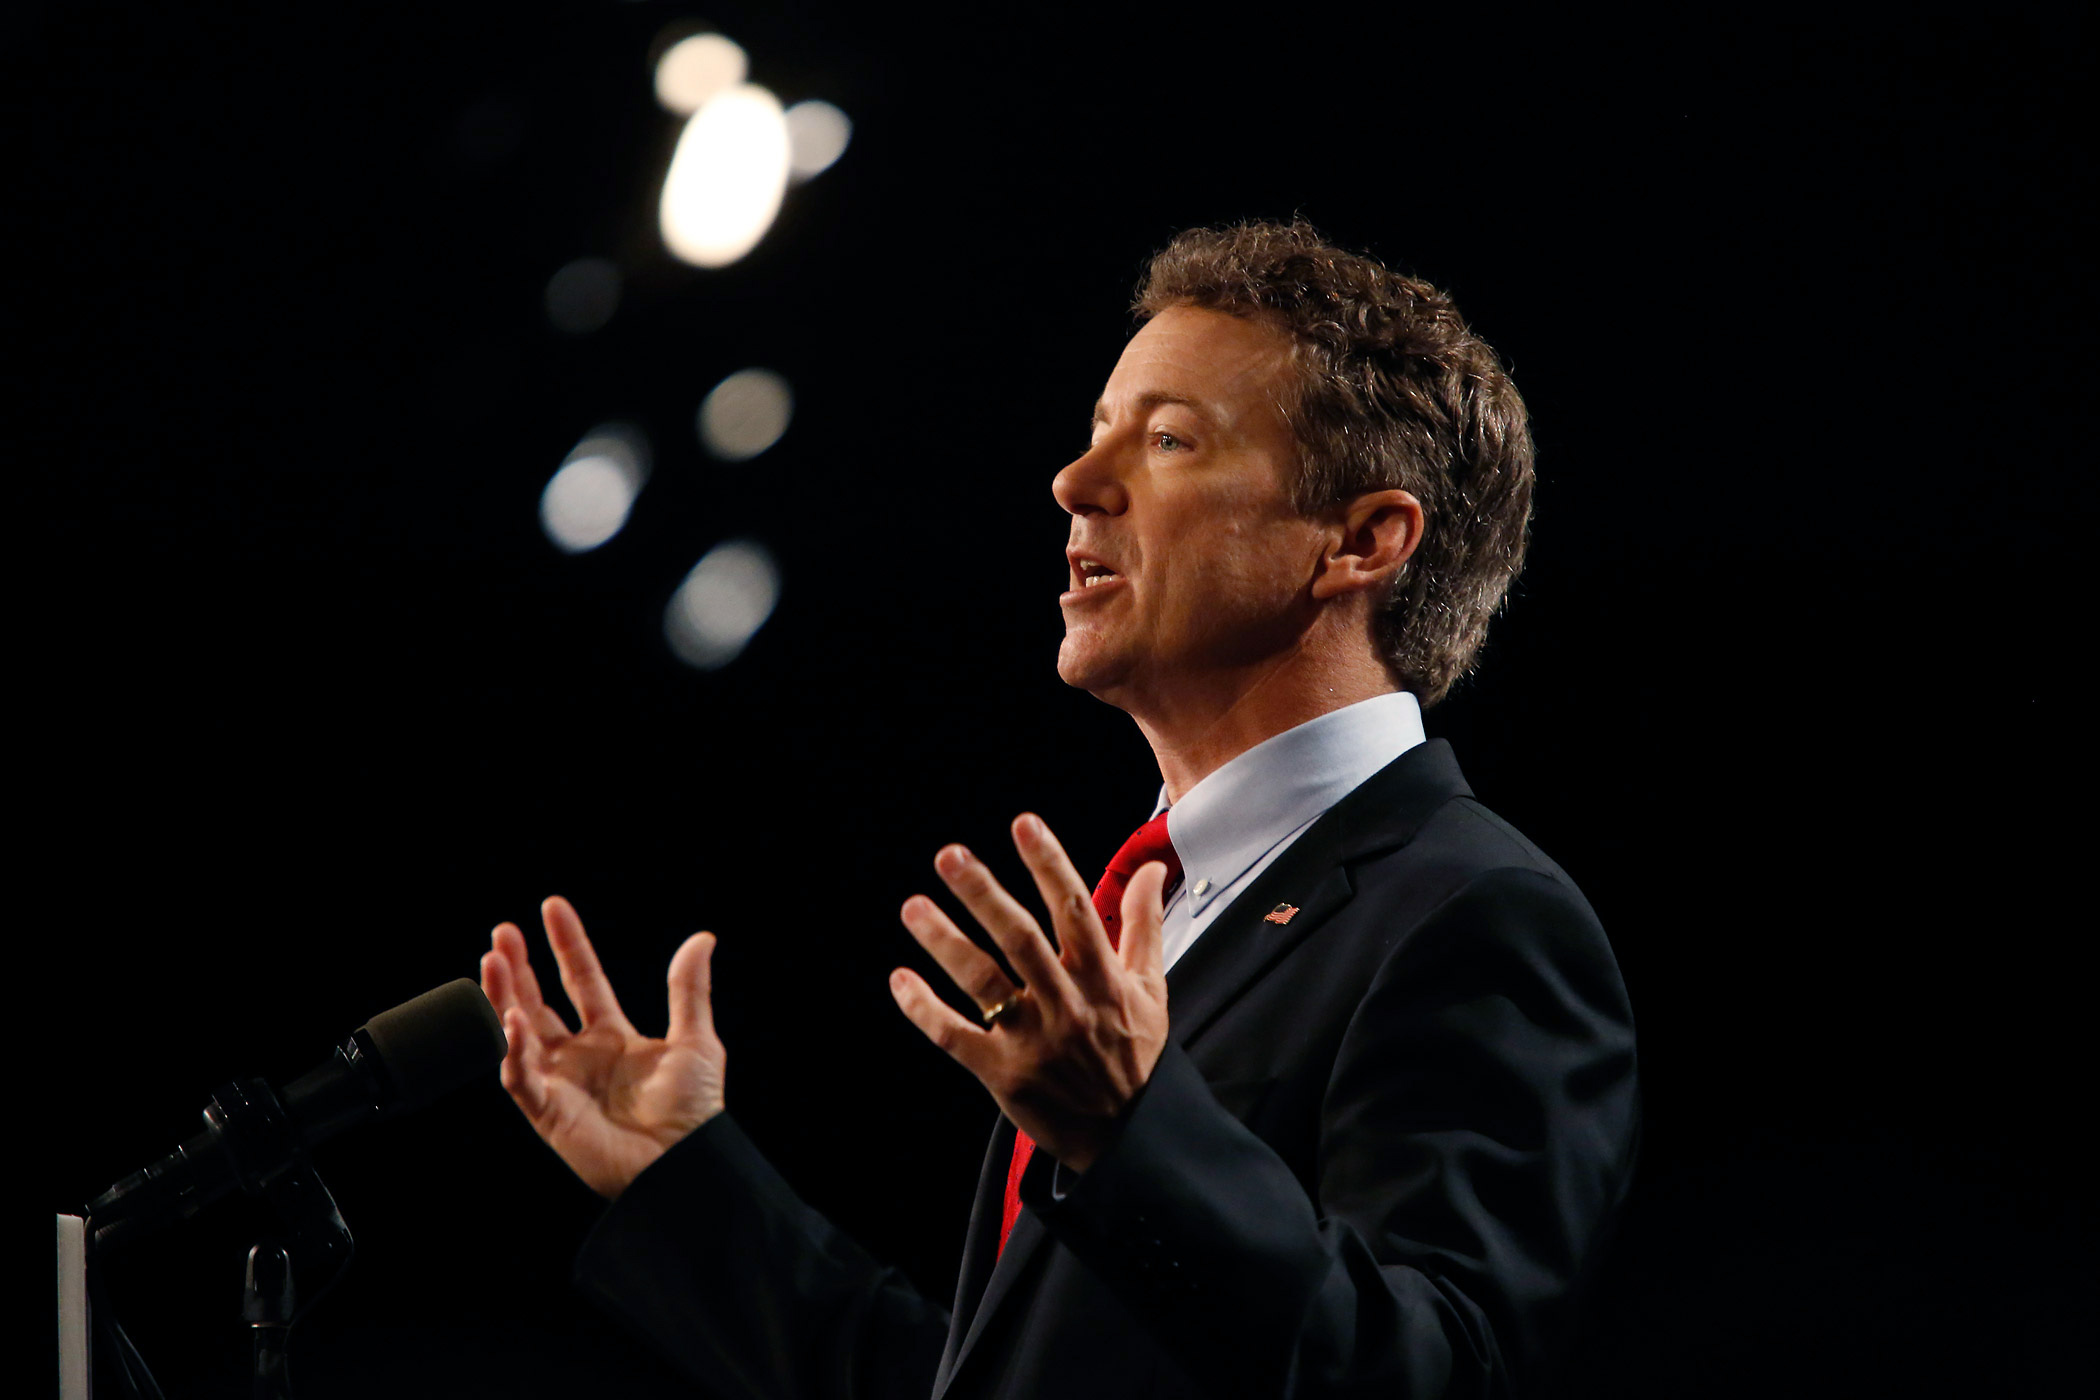 Rand Paul Announces His Candidacy For The Republican Presidential Nomination